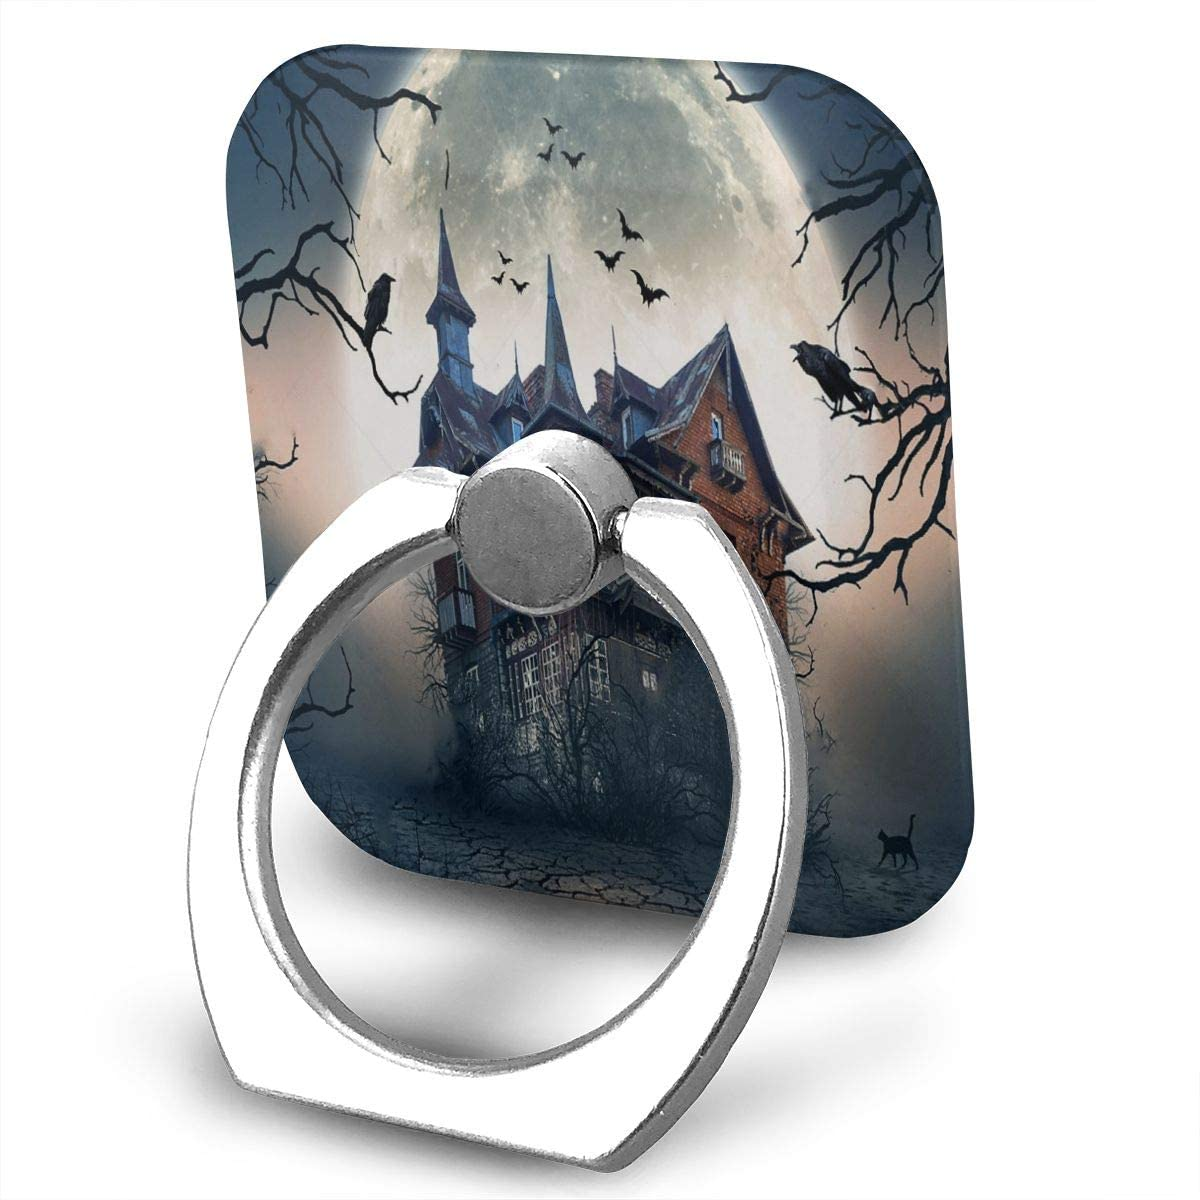 SLHFPX Universal Phone Ring Holder Haunted House with Dark Horror Atmosphere Adjustable 360°Rotation Square Finger Grip Loop Cell Phone Stand for Phone X/6/6s/7/8/8/10/11 Plus Smartphone Android